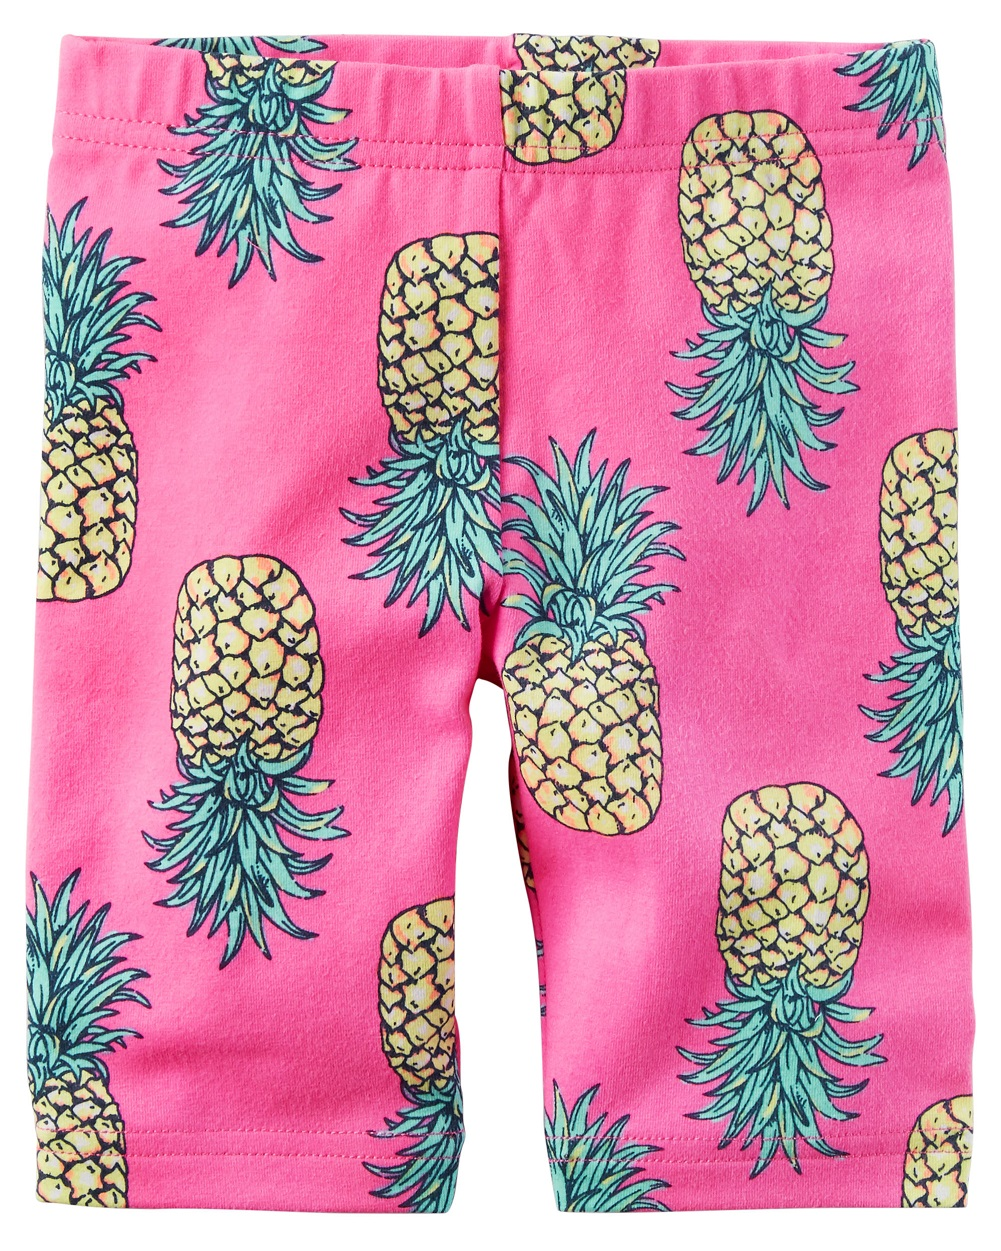 Carter's Baby Girls' Printed Biker Shorts, Pineapple, 6 Months